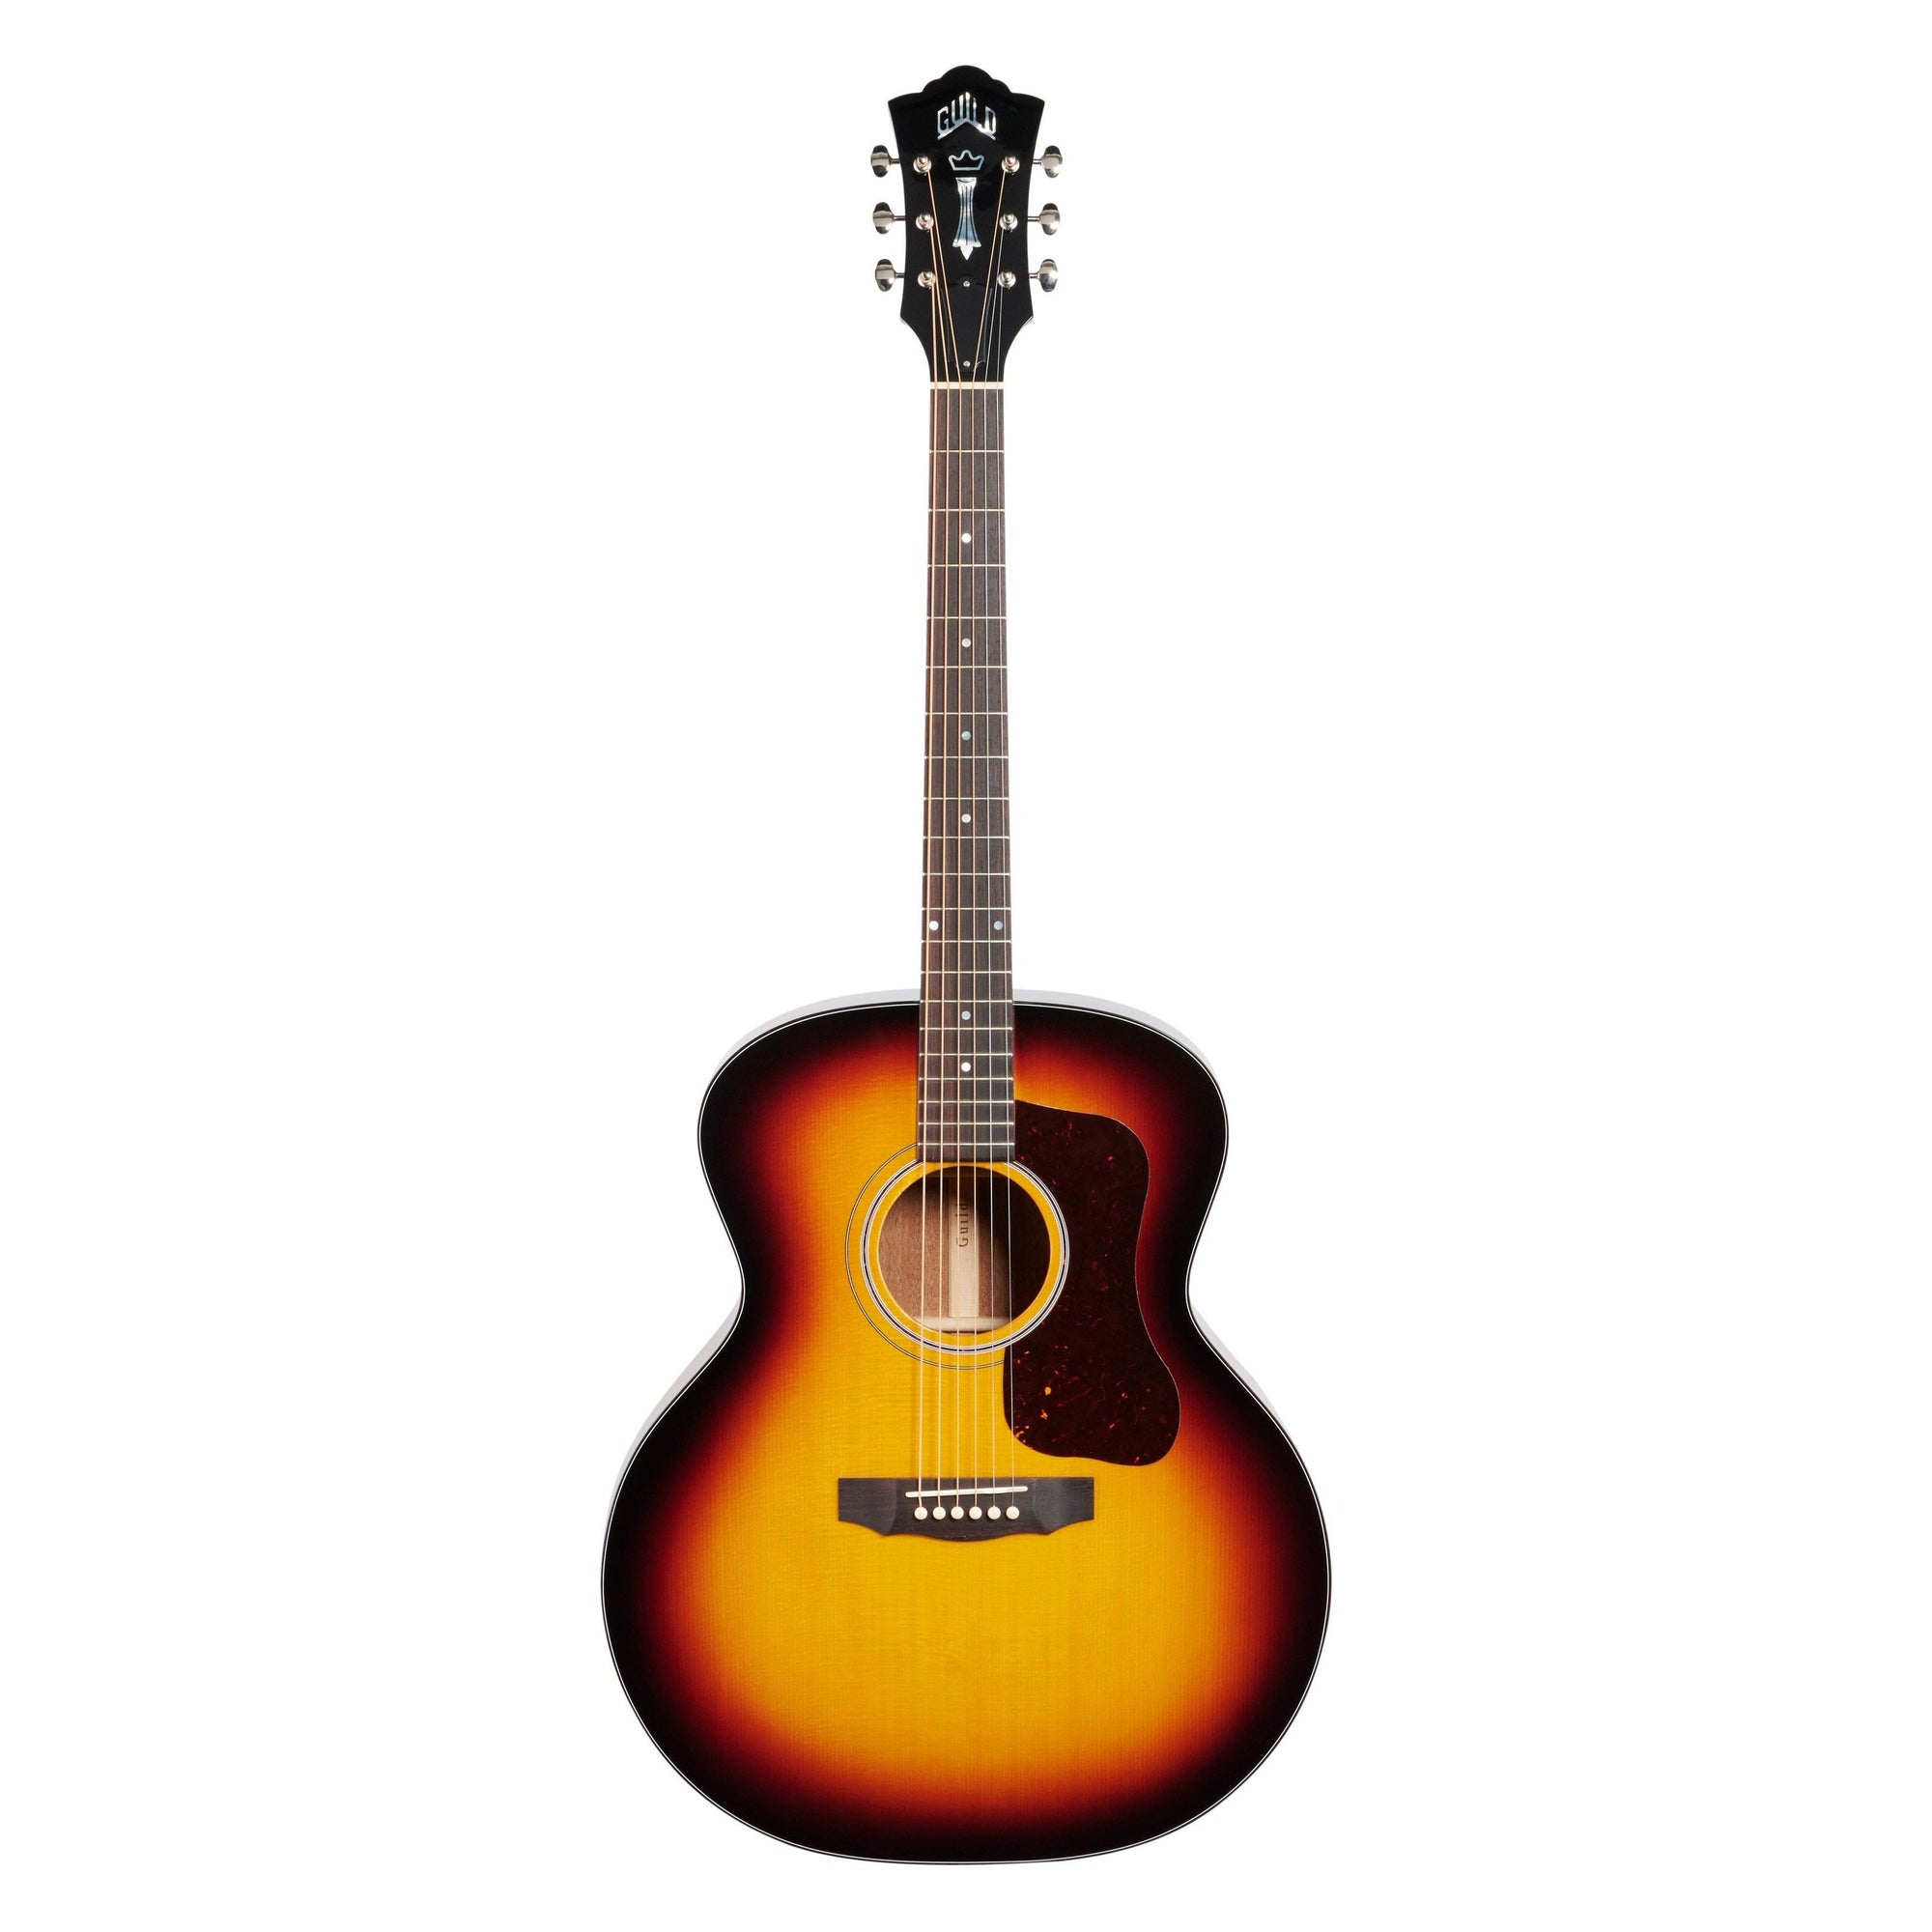 Guild F-40 Traditional Jumbo Acoustic Guitar (with Case), Antique Sunburst